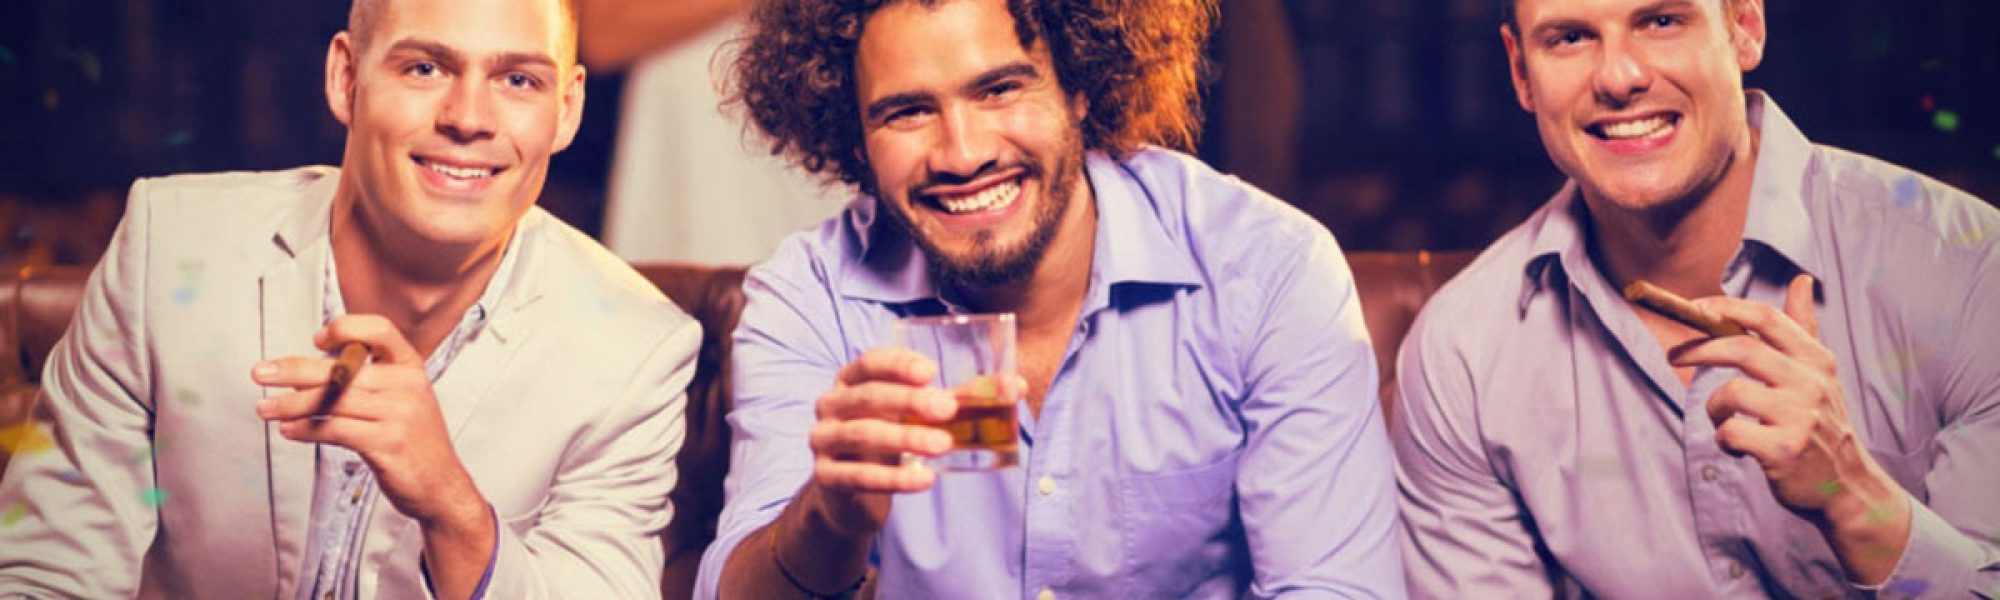 whisky bar guest experience